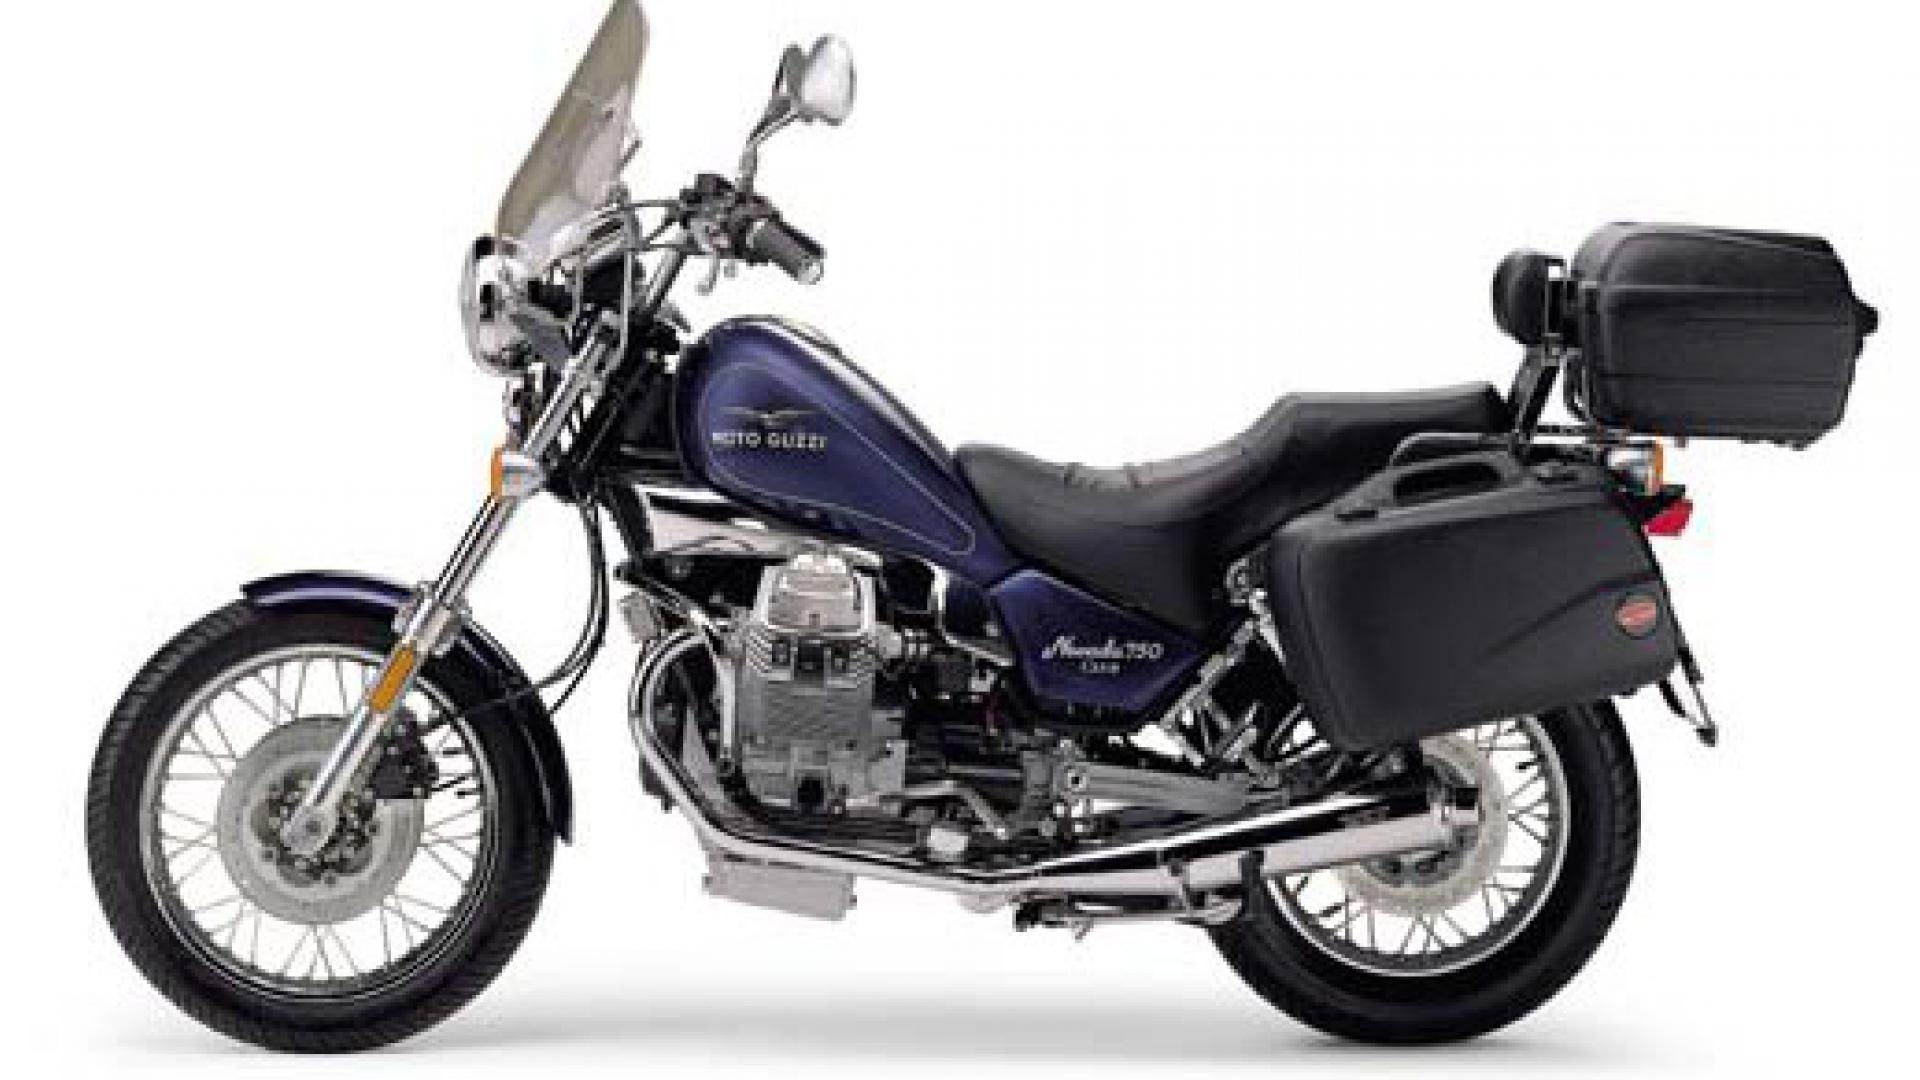 1997 moto guzzi nevada 350 pics specs and information. Black Bedroom Furniture Sets. Home Design Ideas